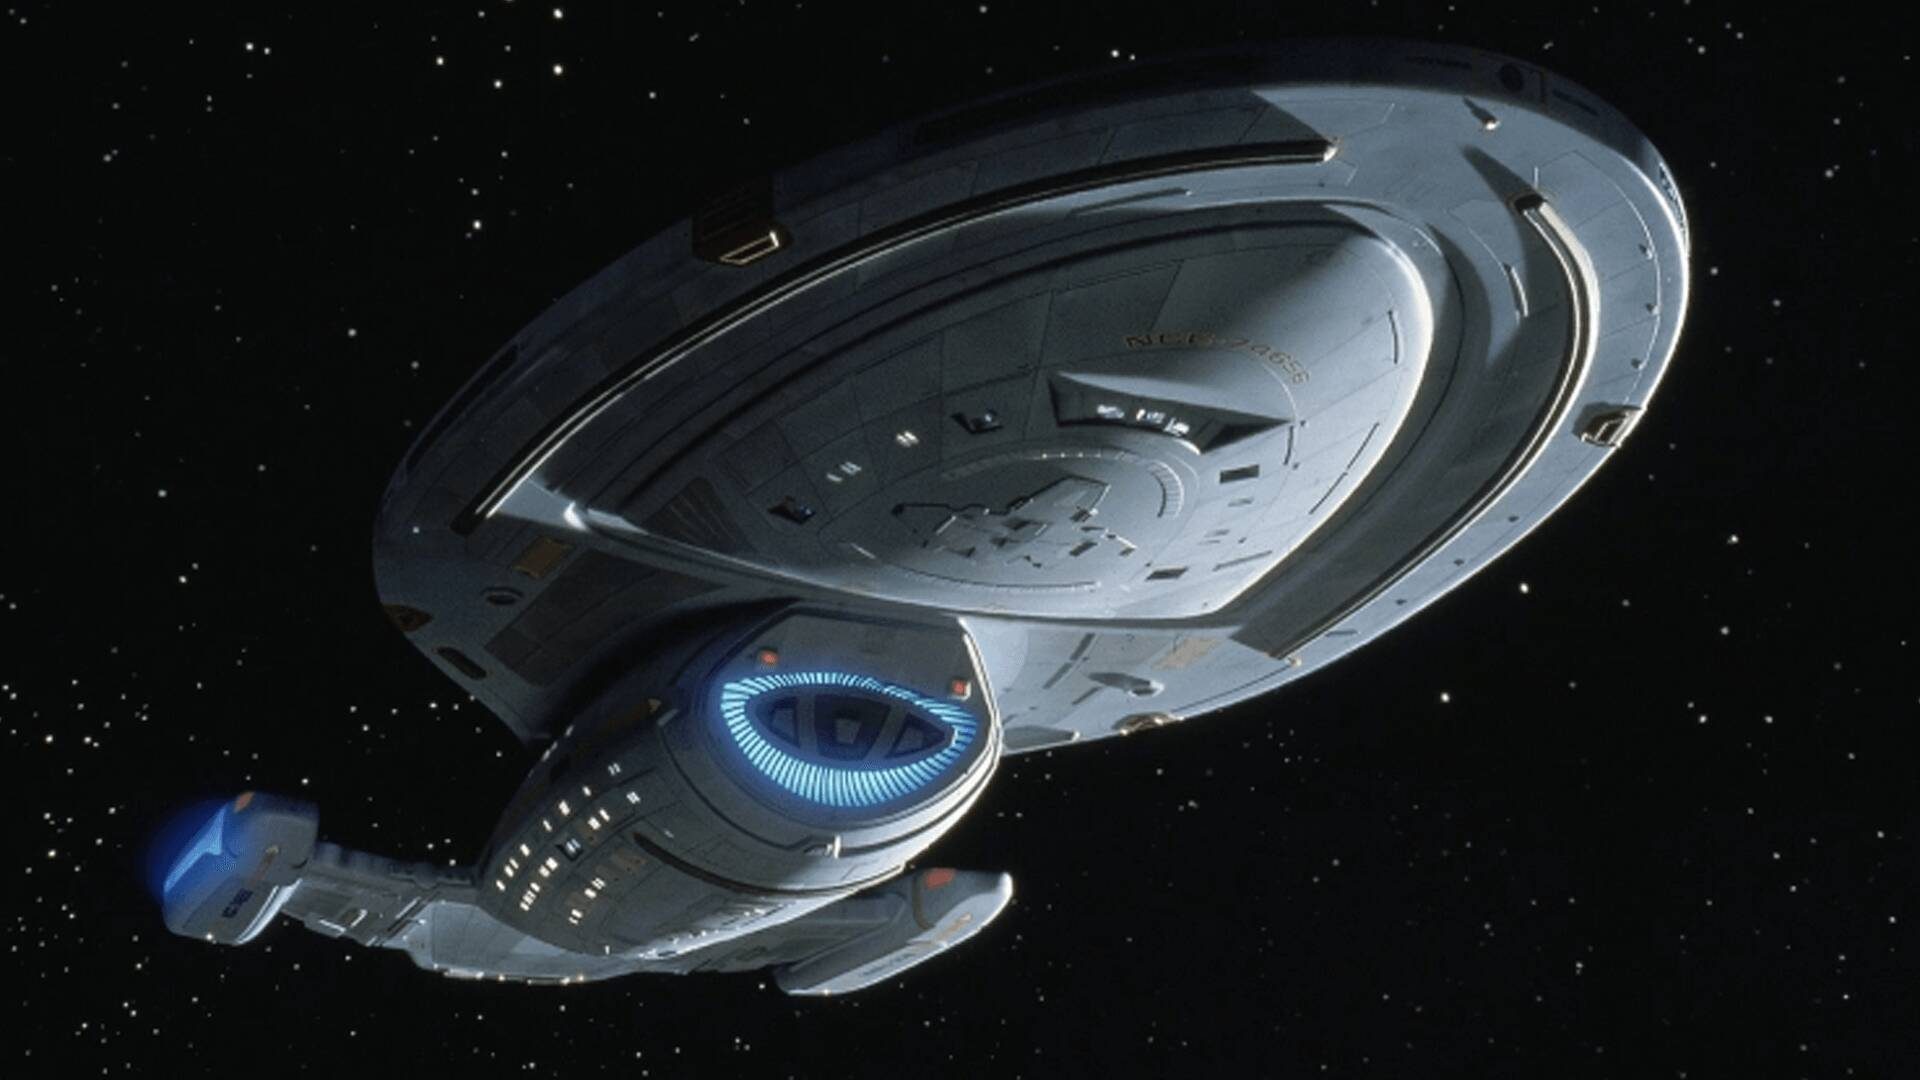 USS Voyager microswimmer